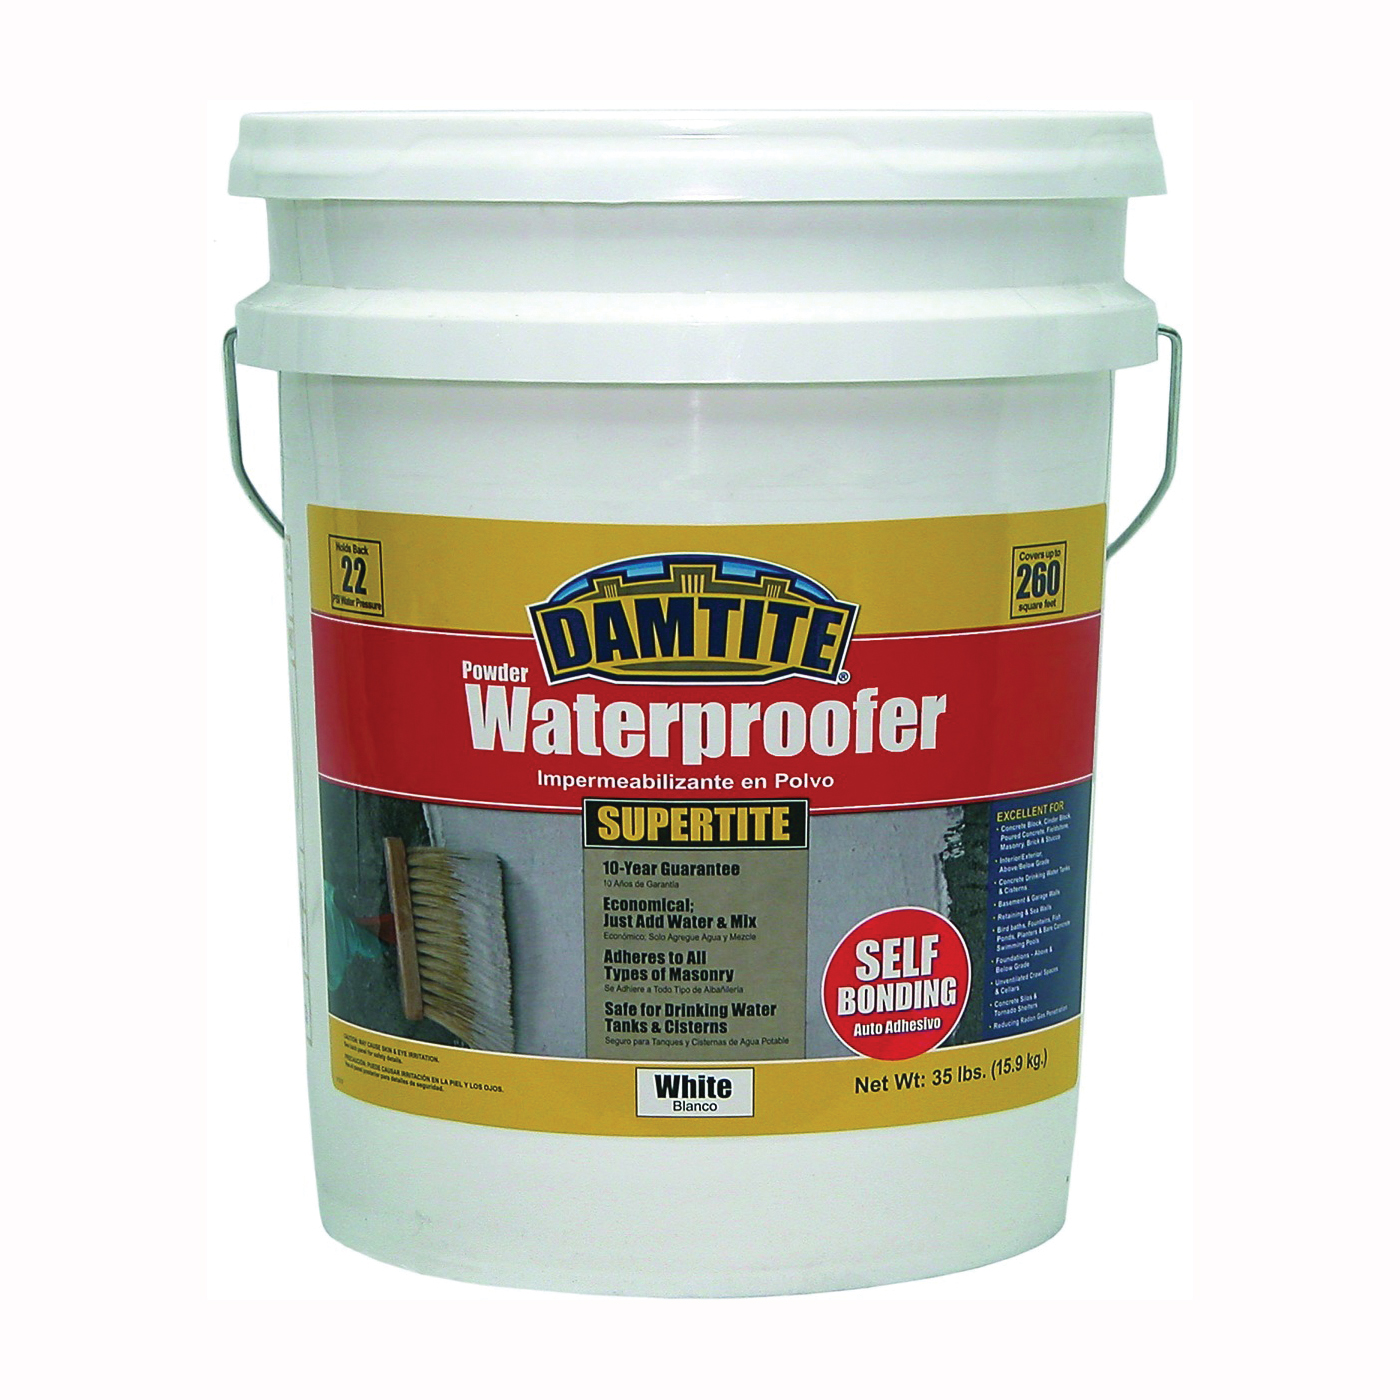 Picture of DAMTITE 01351 Powder Waterproofer, White, Powder, 35 lb Package, Pail